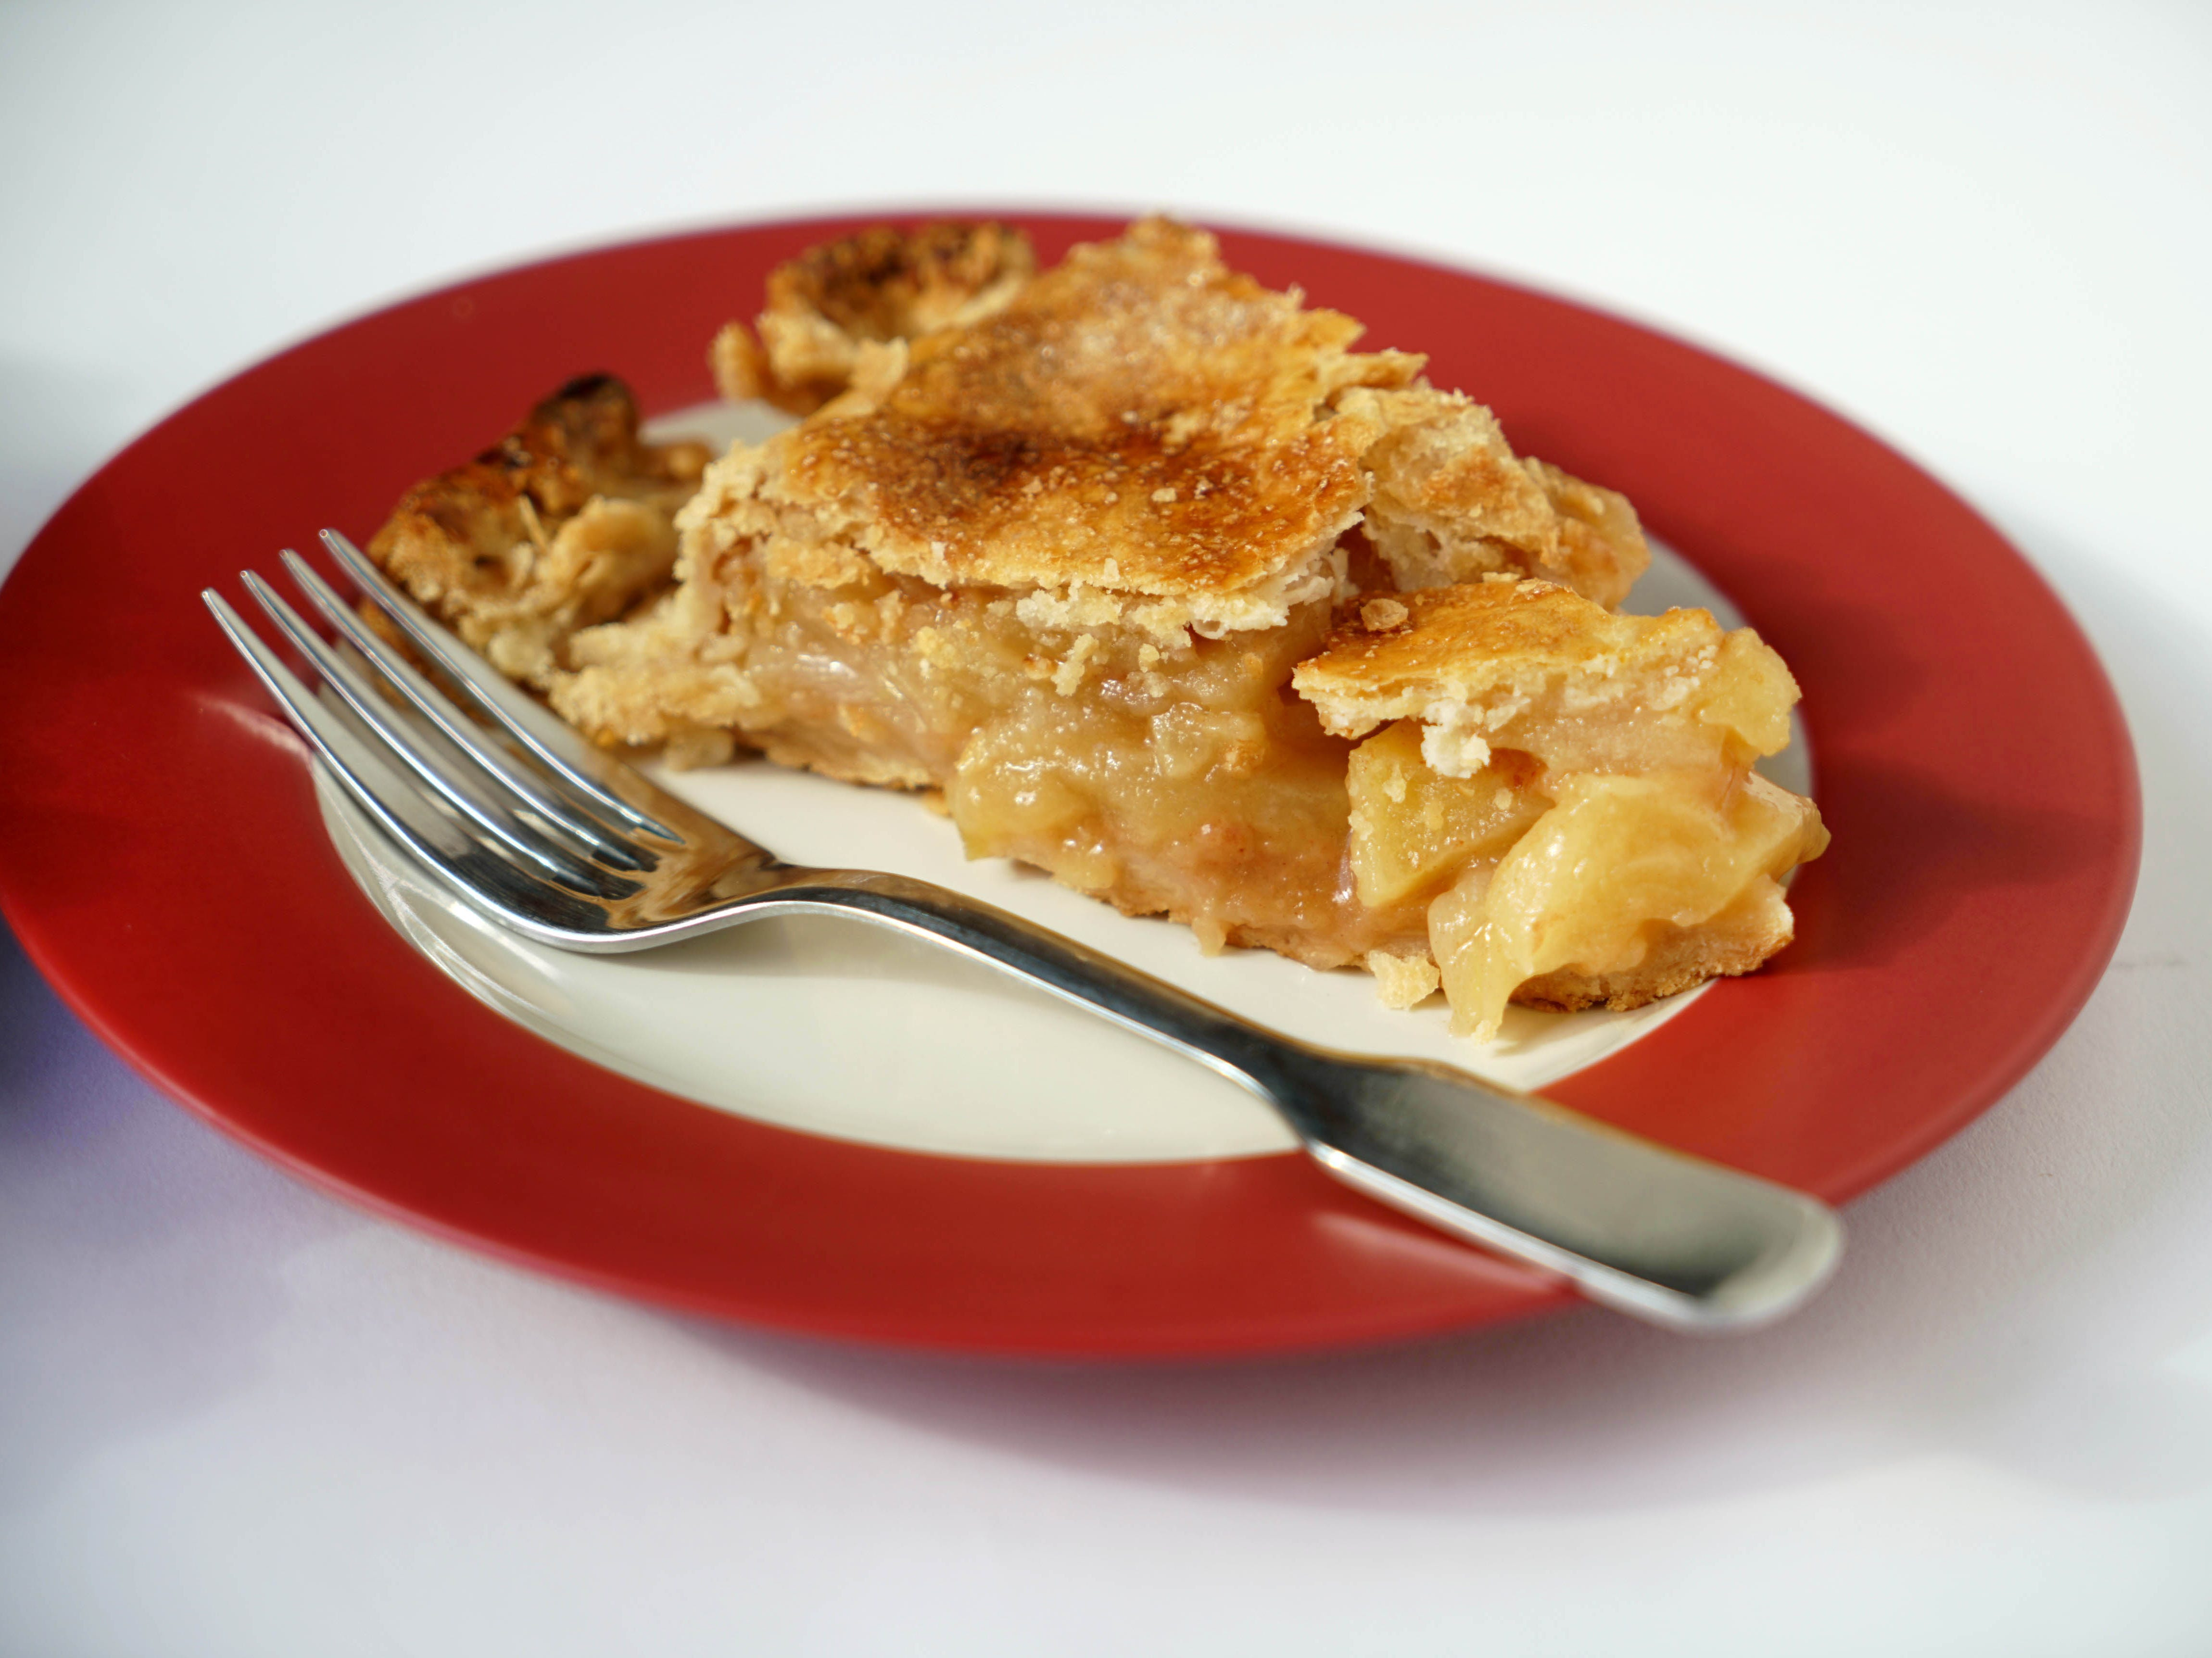 Thanksgiving guide: Make-and-bake frozen apple pie. Seriously.